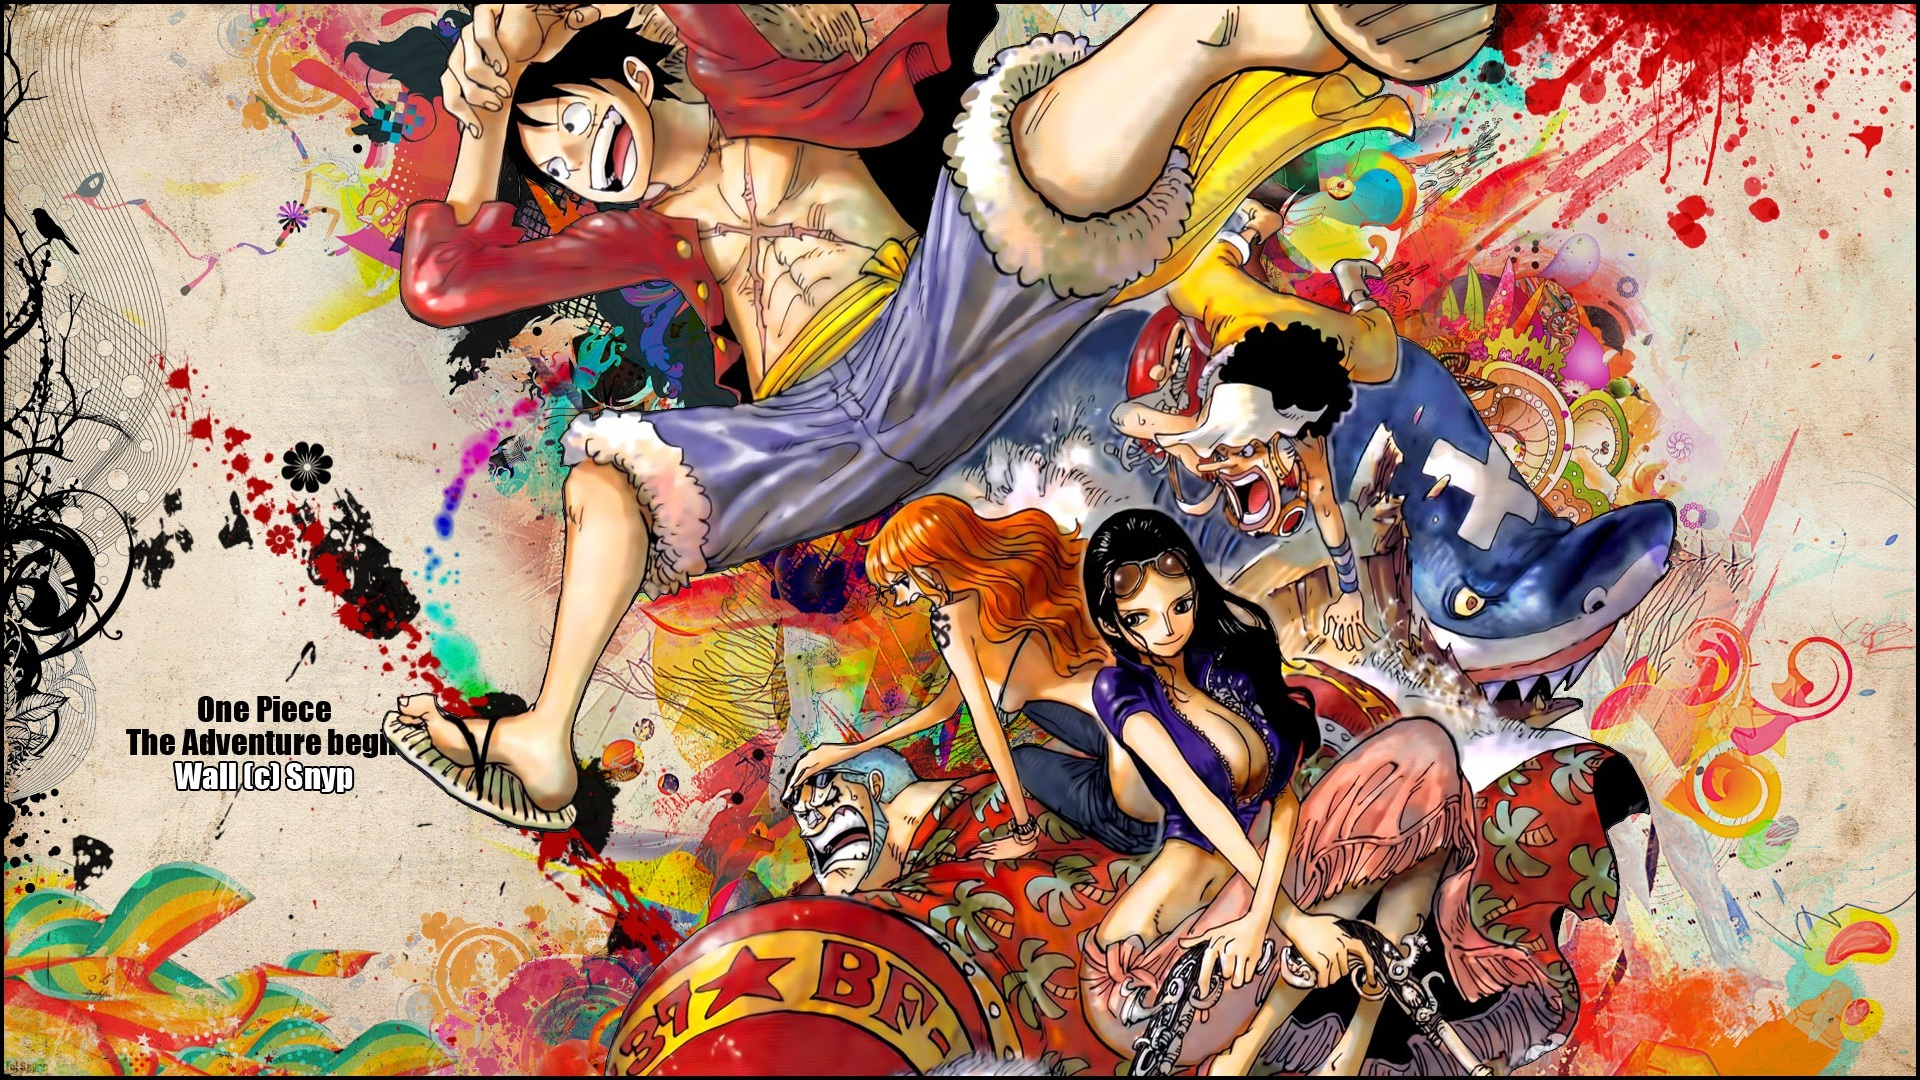 Free Download Fond Ecran Hd Manga One Piece Wallpaper Background 1920x1080 Picture 1920x1080 For Your Desktop Mobile Tablet Explore 75 One Piece Hd Wallpapers One Piece Wallpaper 1920x1080 Cool